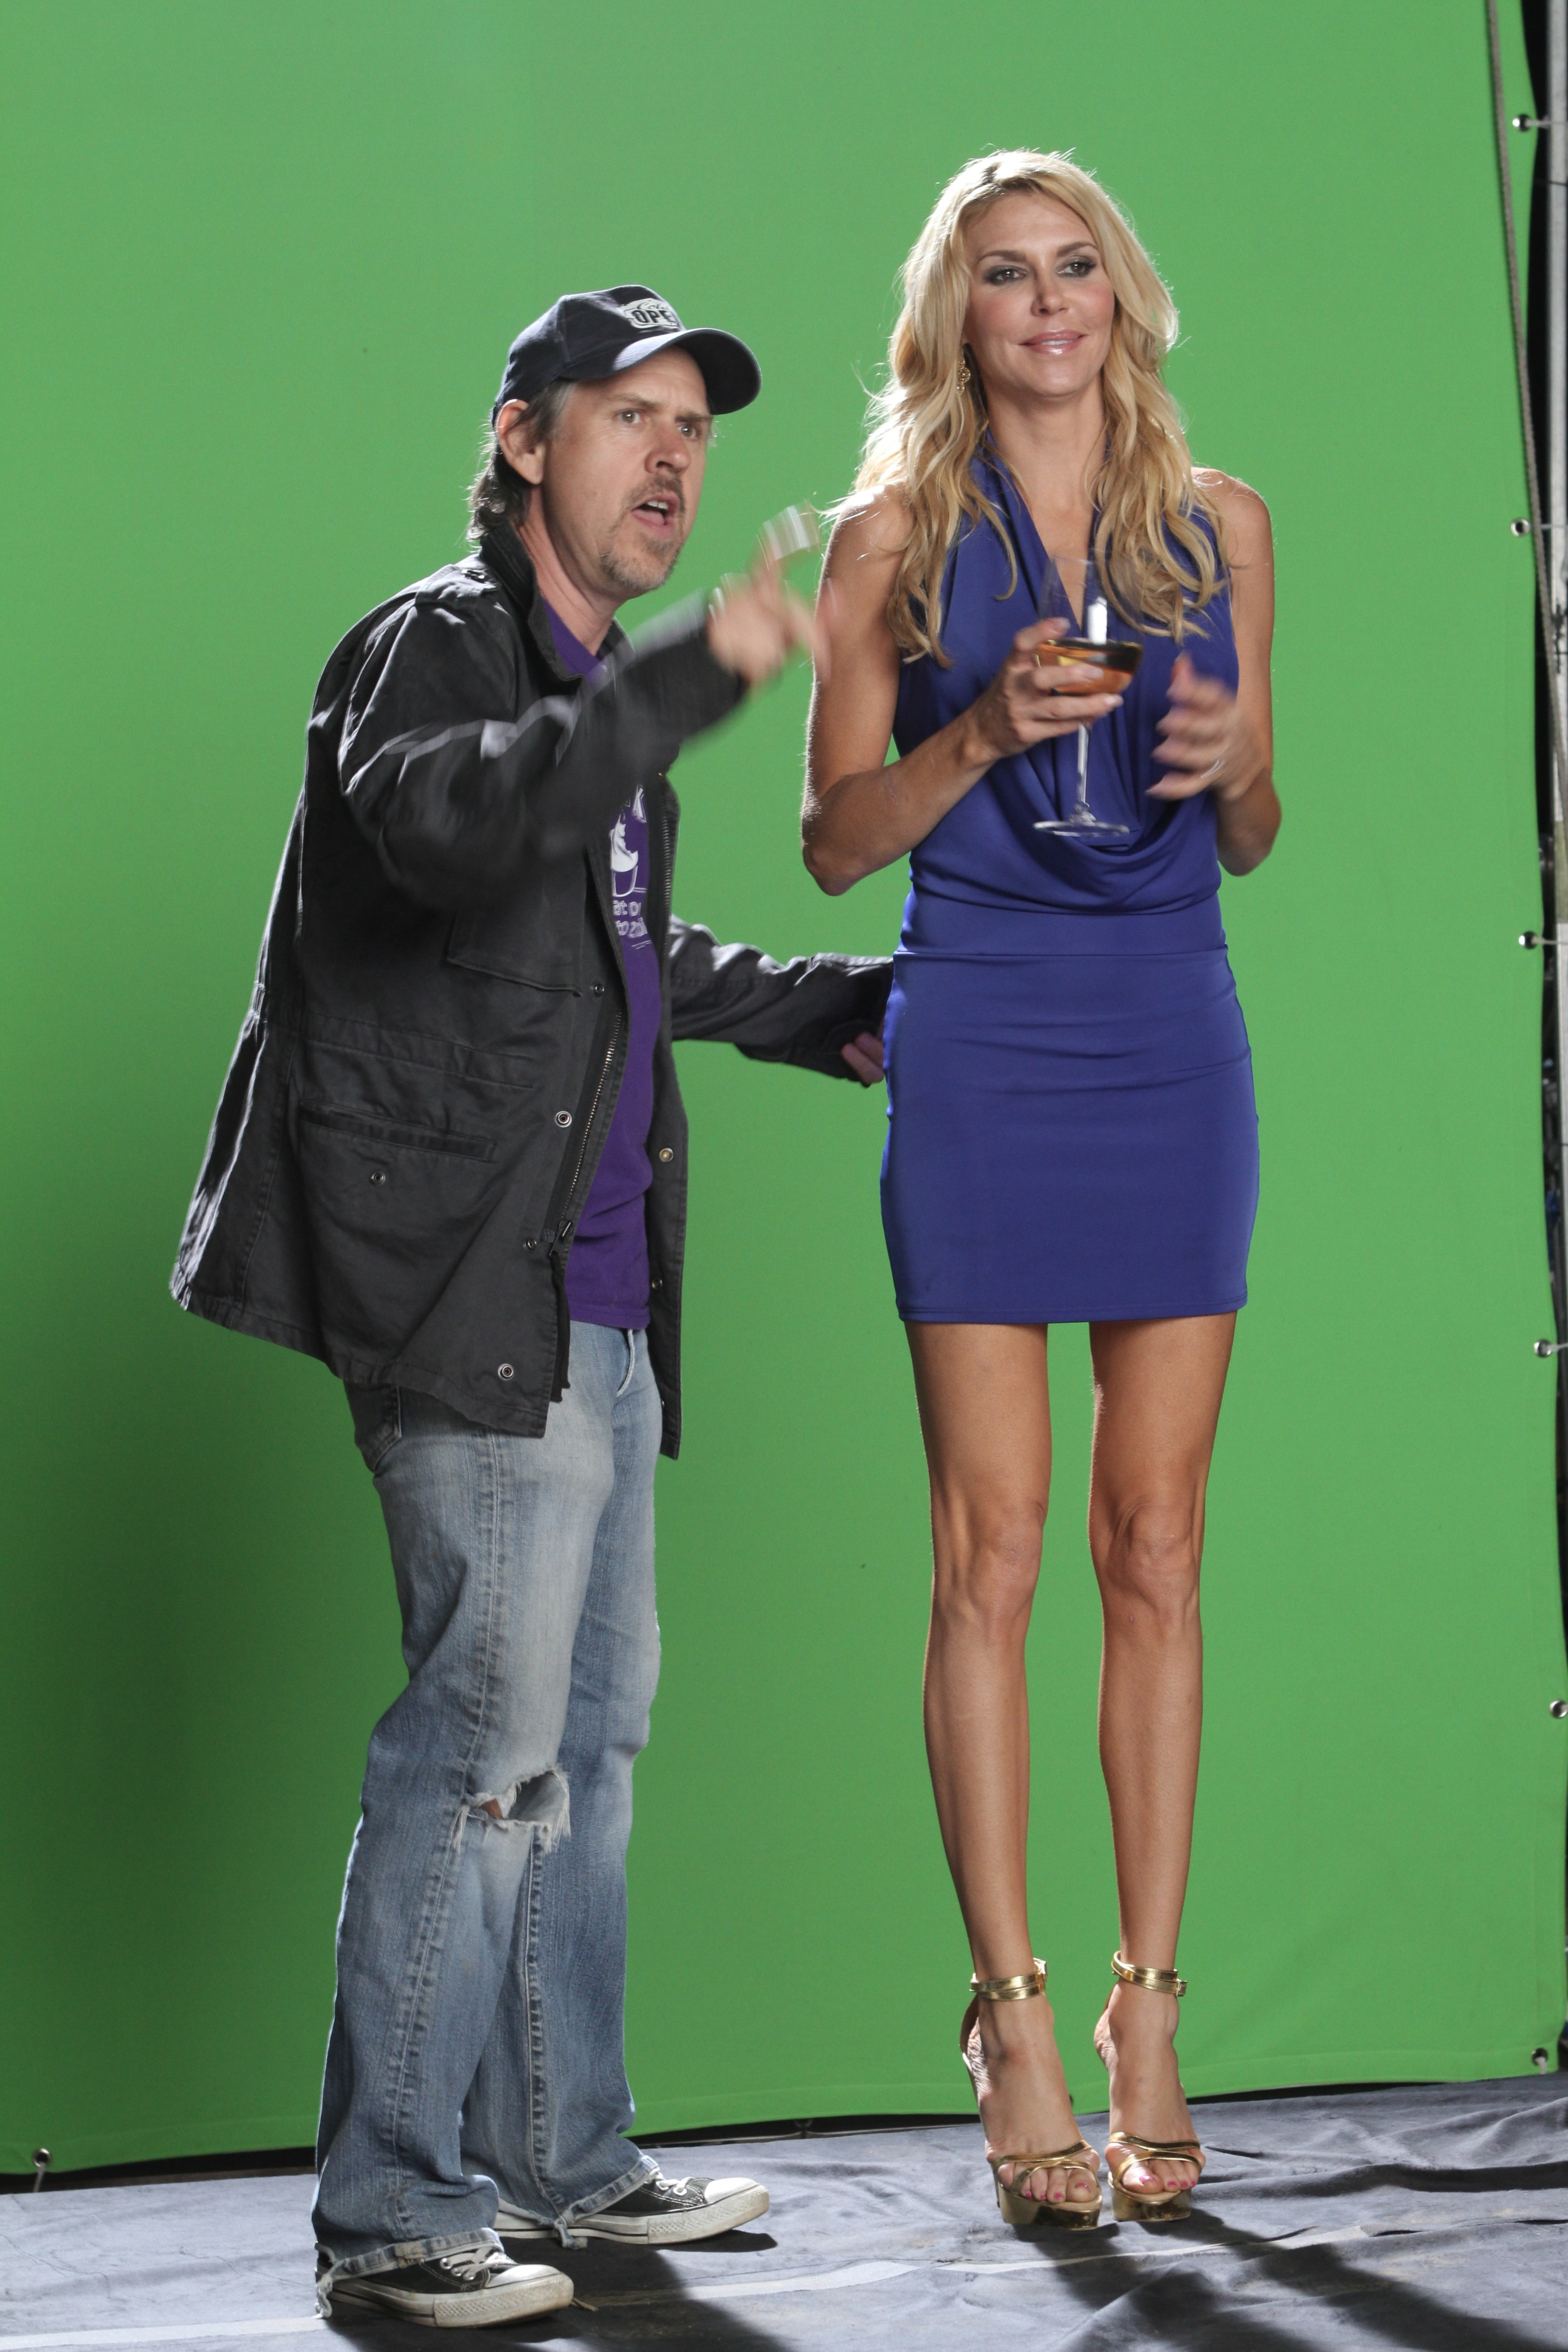 Green Screen with Brandi Glanville on The Hungover Games